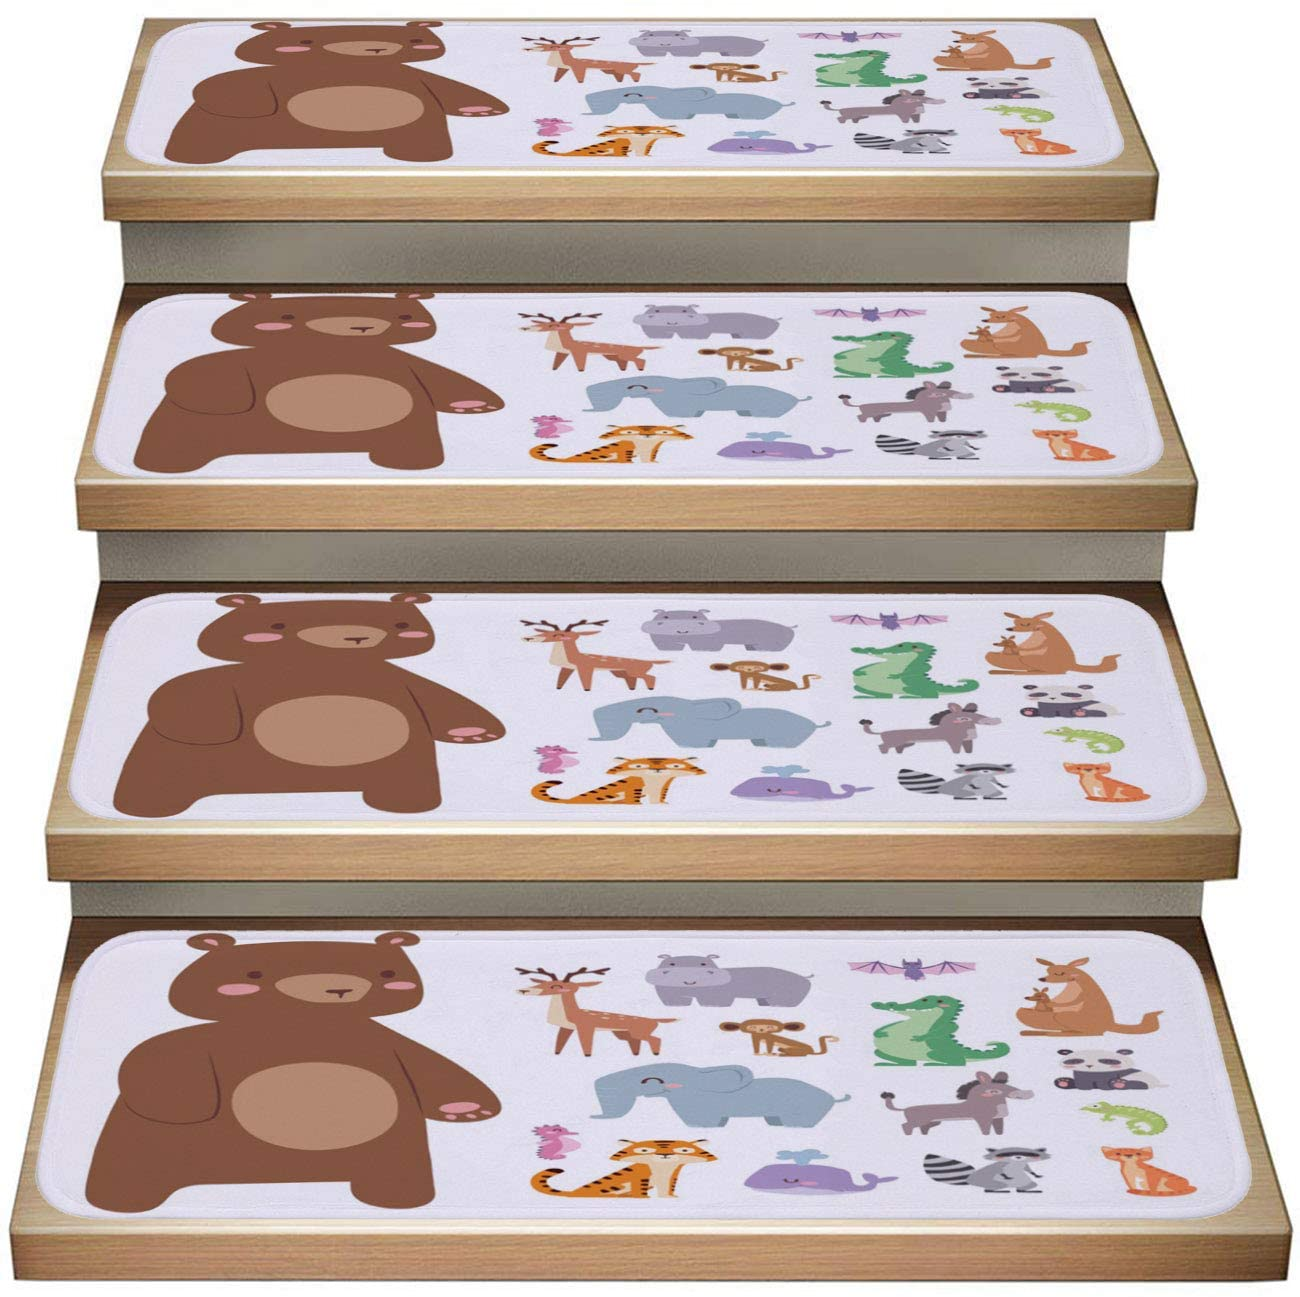 Cartoon 13-Pack Non-Slip Stair Mat,Cute Zoo Cartoon Animals Funny Wildlife Learn Cute Language and Tropical Nature Safari Mammal Illustration,Soft Stair Mat Rotection Kids, Elders, and Dogs Safety